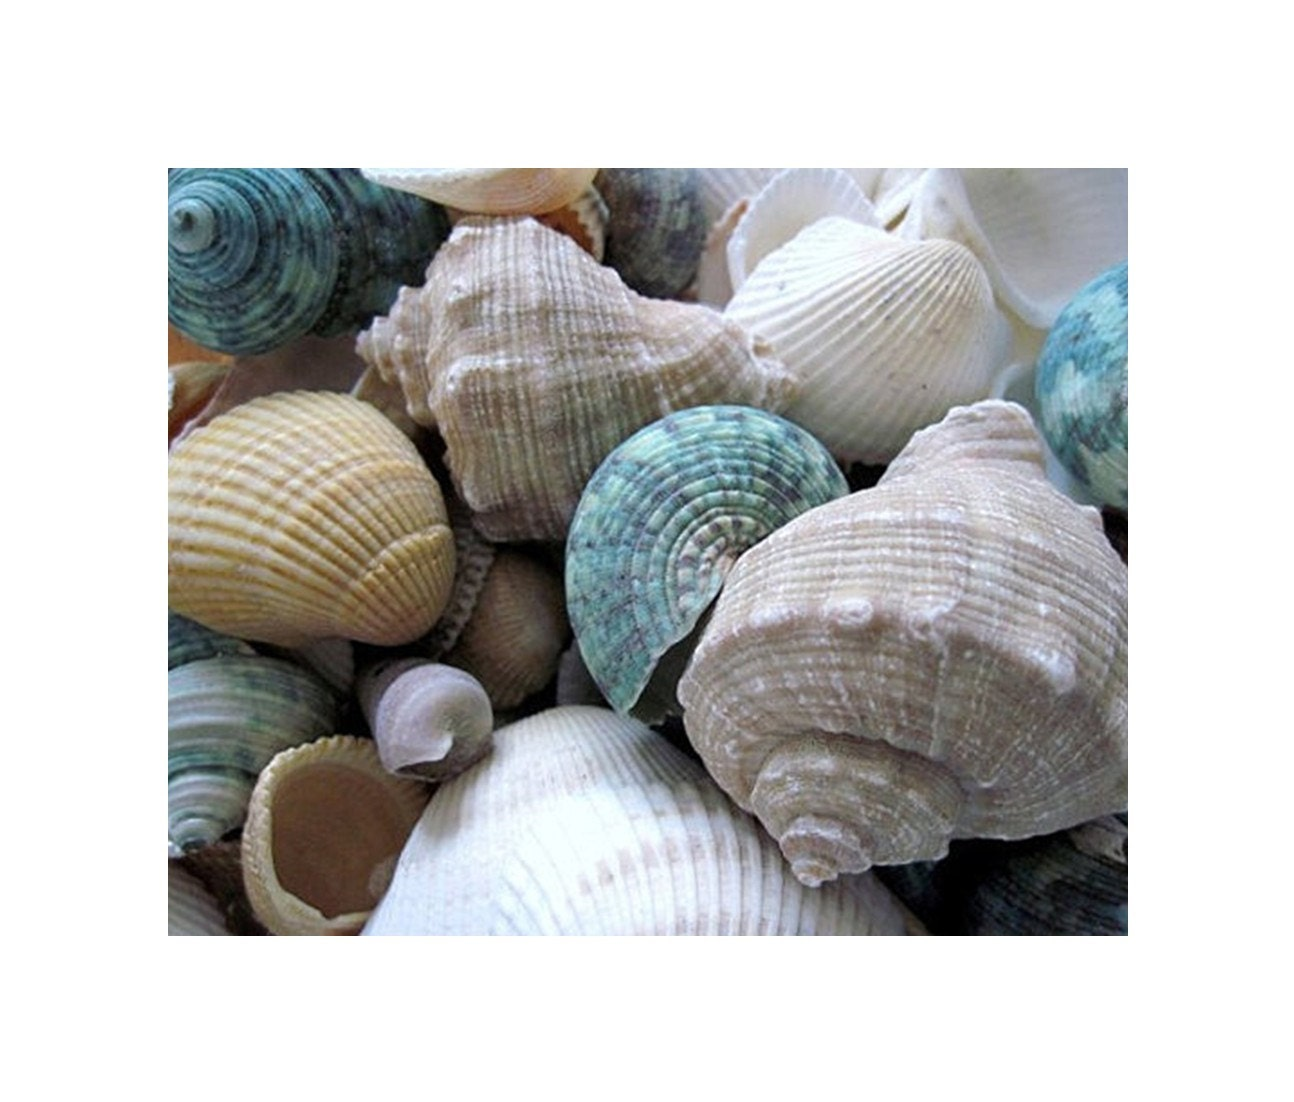 Aqua  Seashells, 10 x 8, Fine Art Photograph, Tan, Taupe, Ivory, White, And Aqua Shells...Macro Modern